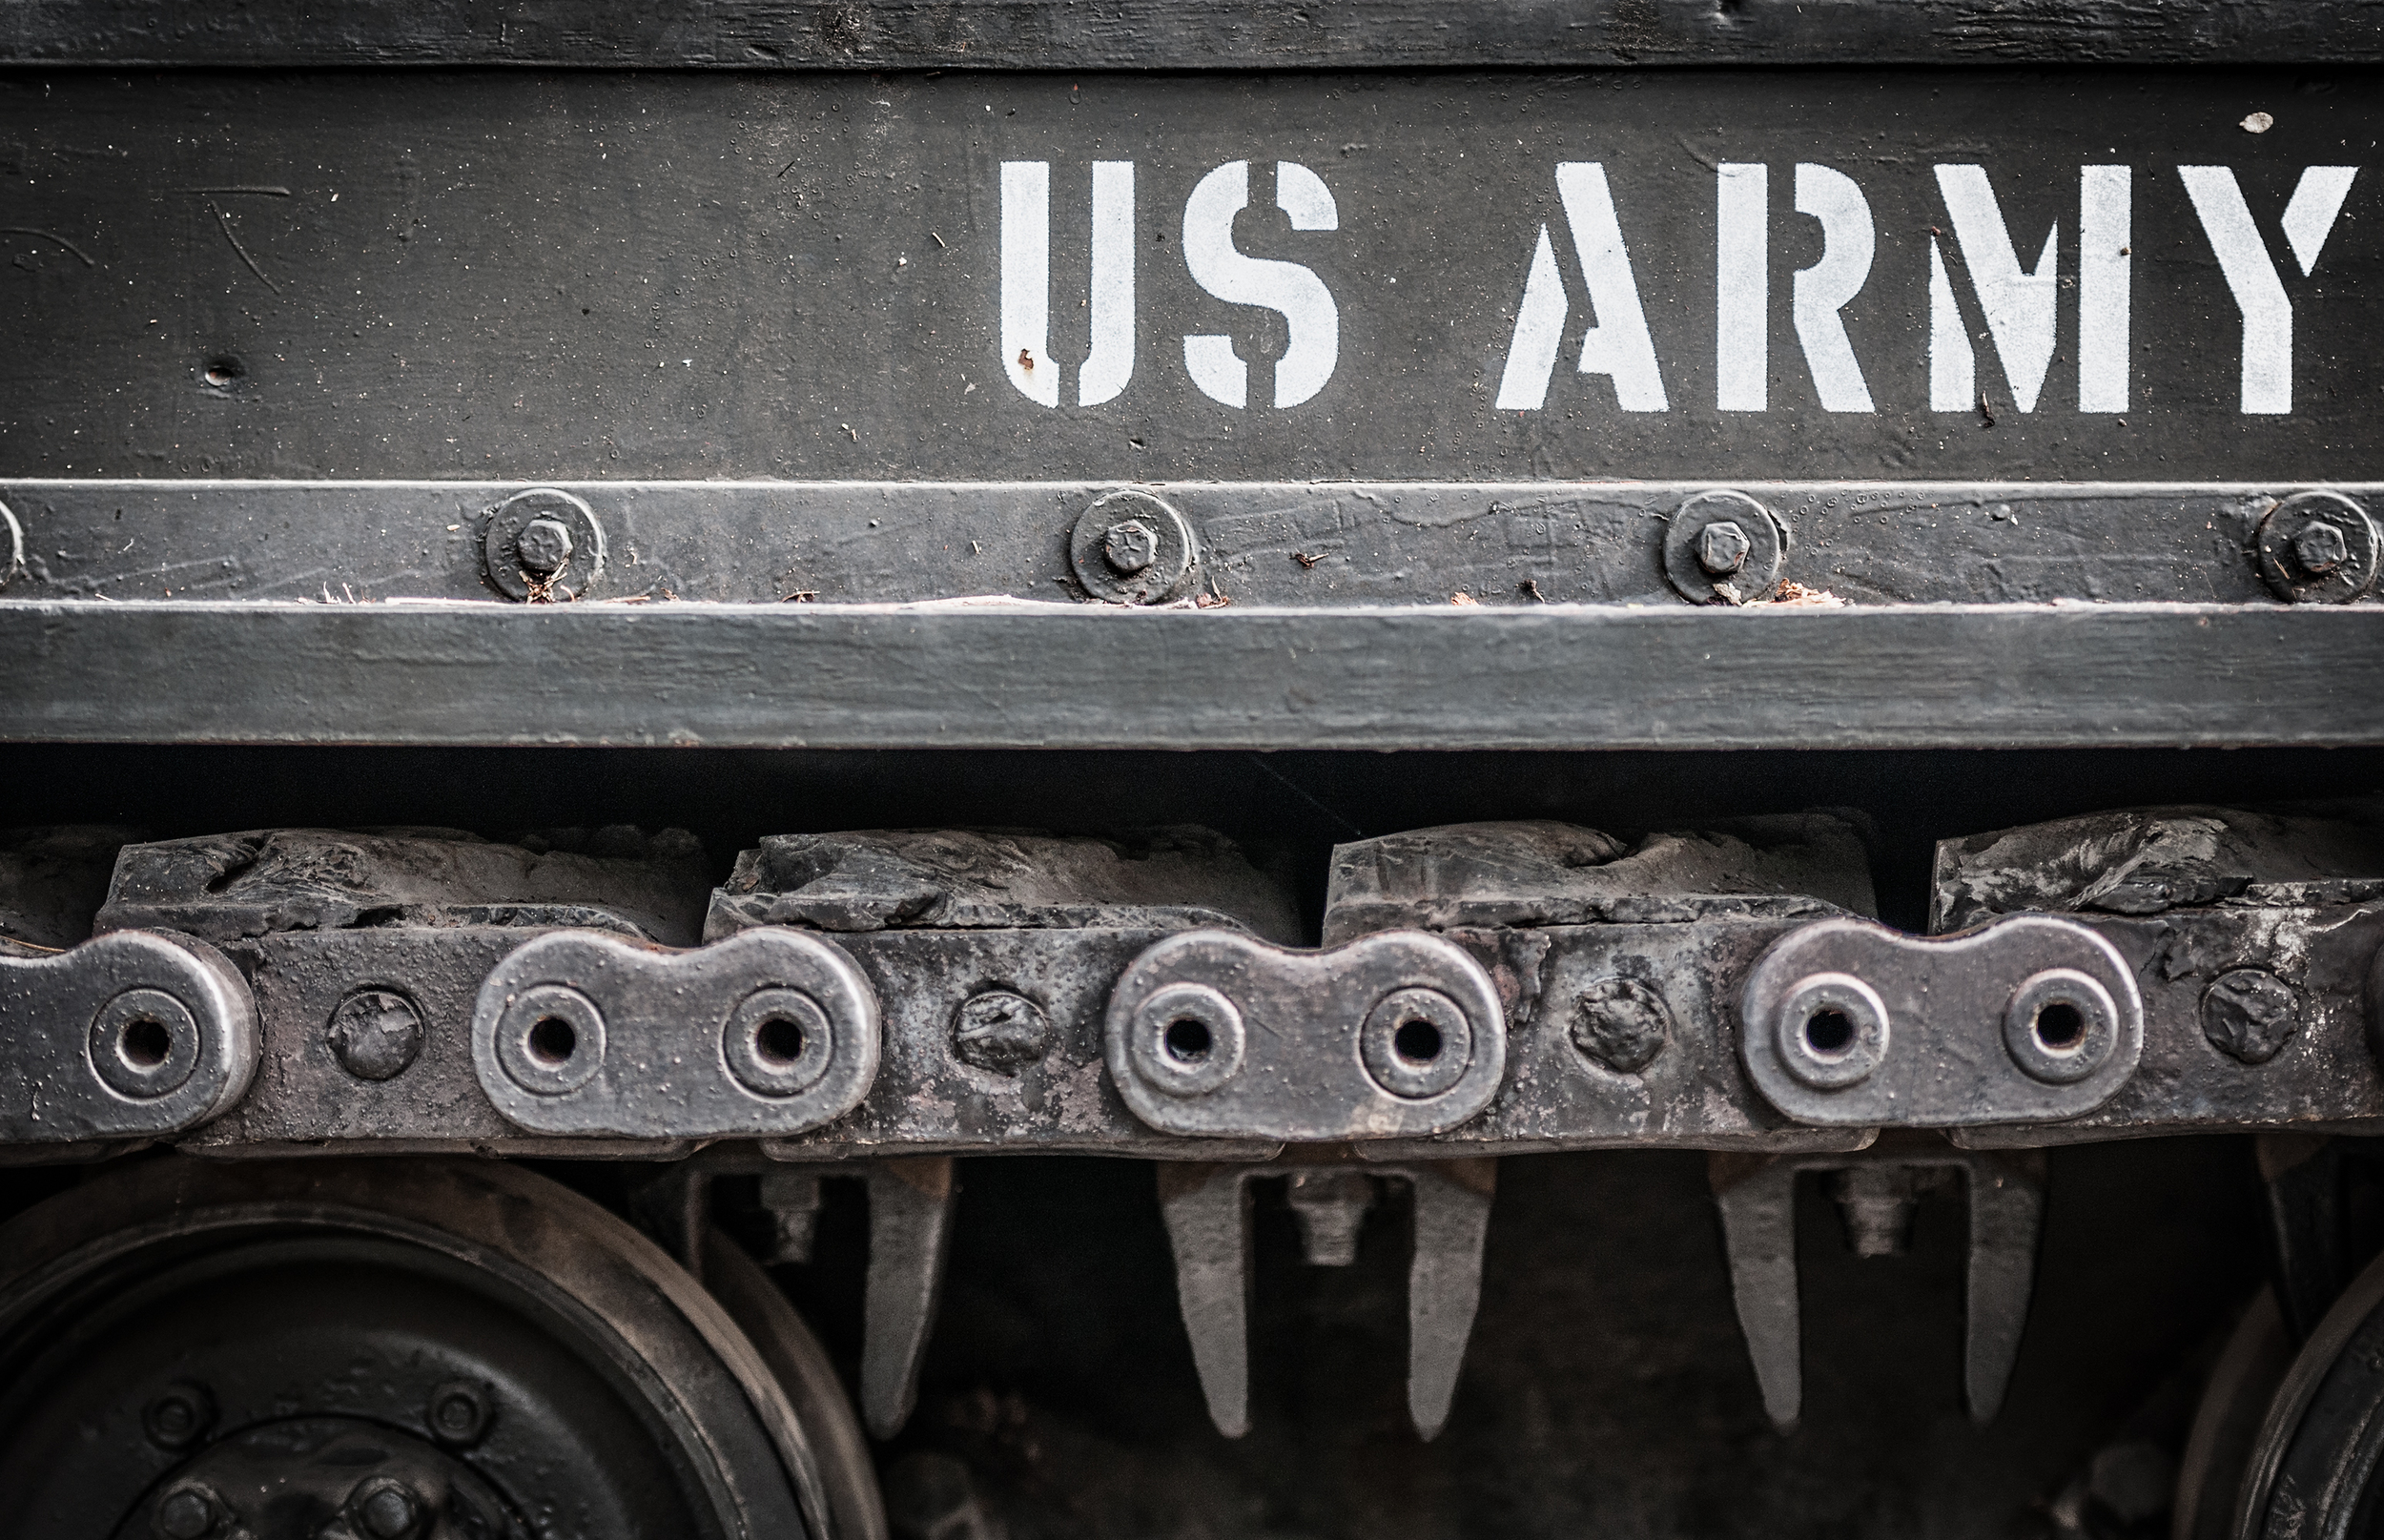 stock-photo-tank-close-up-with-wheel-caterpillar-and-text-us-army-on-it-focus-on-side-of-military-transport-139634210.jpg